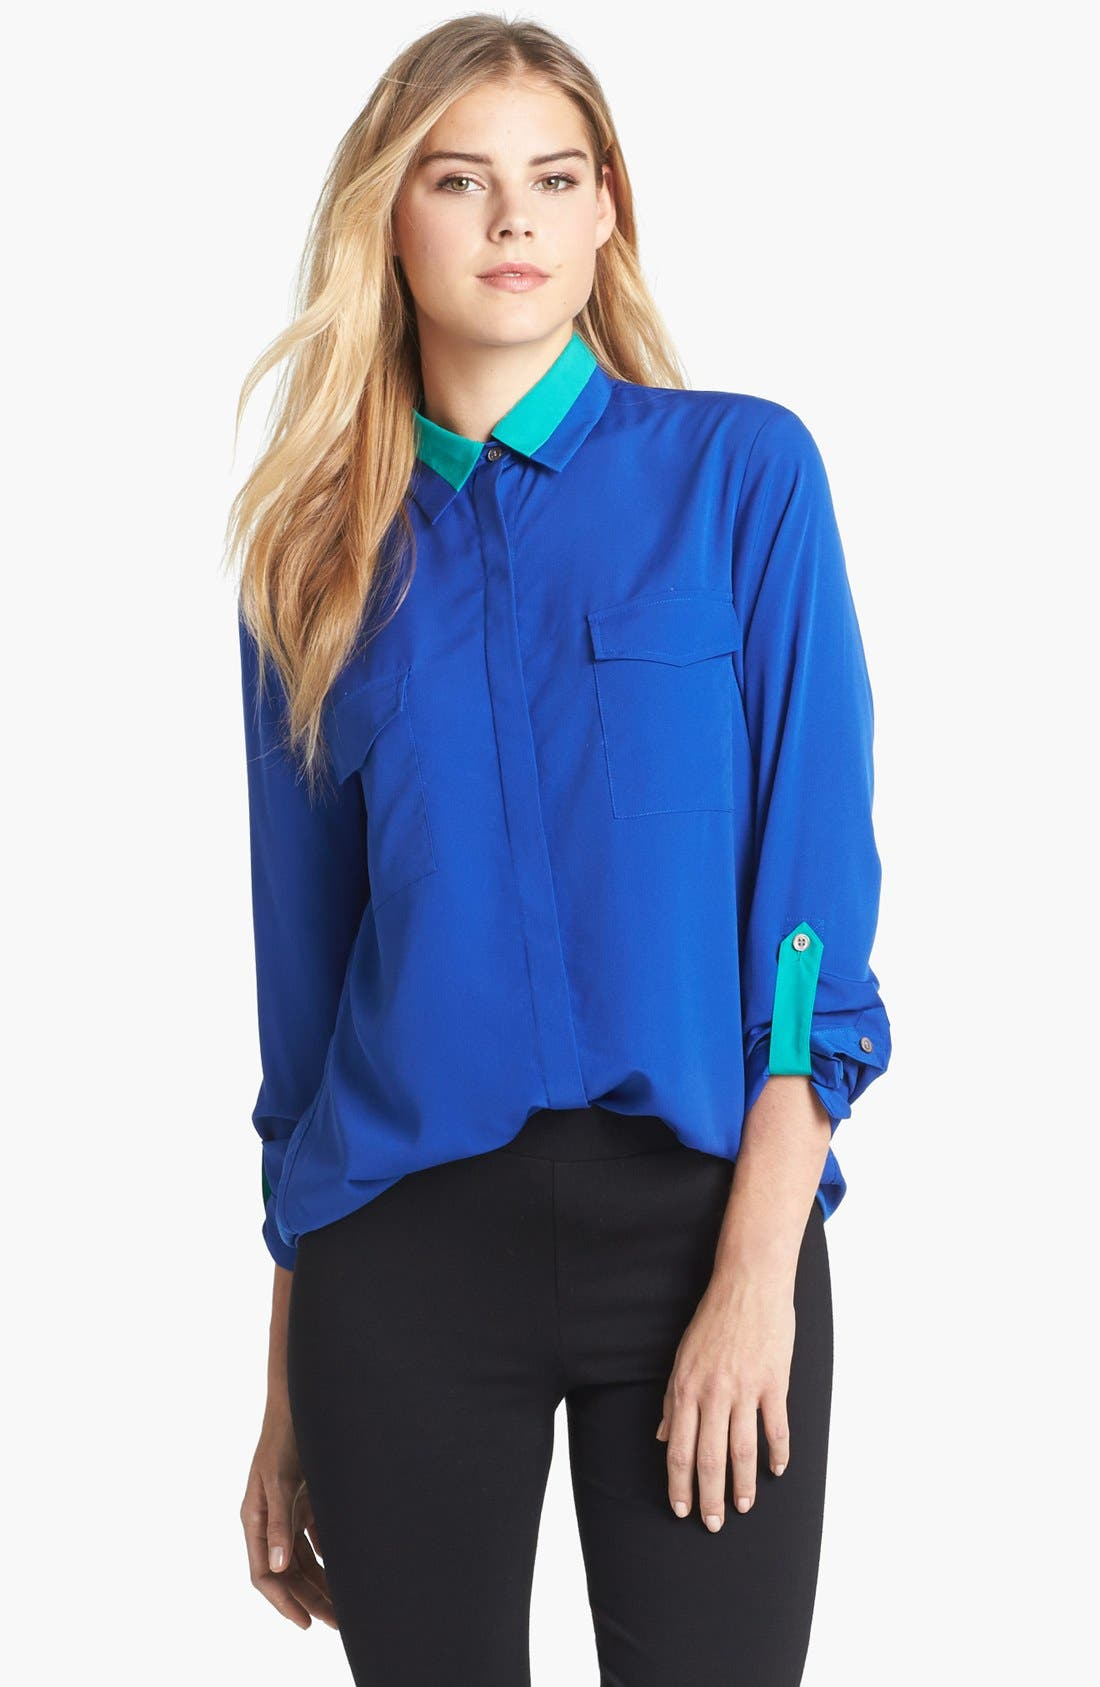 Alternate Image 1 Selected - Two by Vince Camuto Colorblock Roll Tab Sleeve Blouse